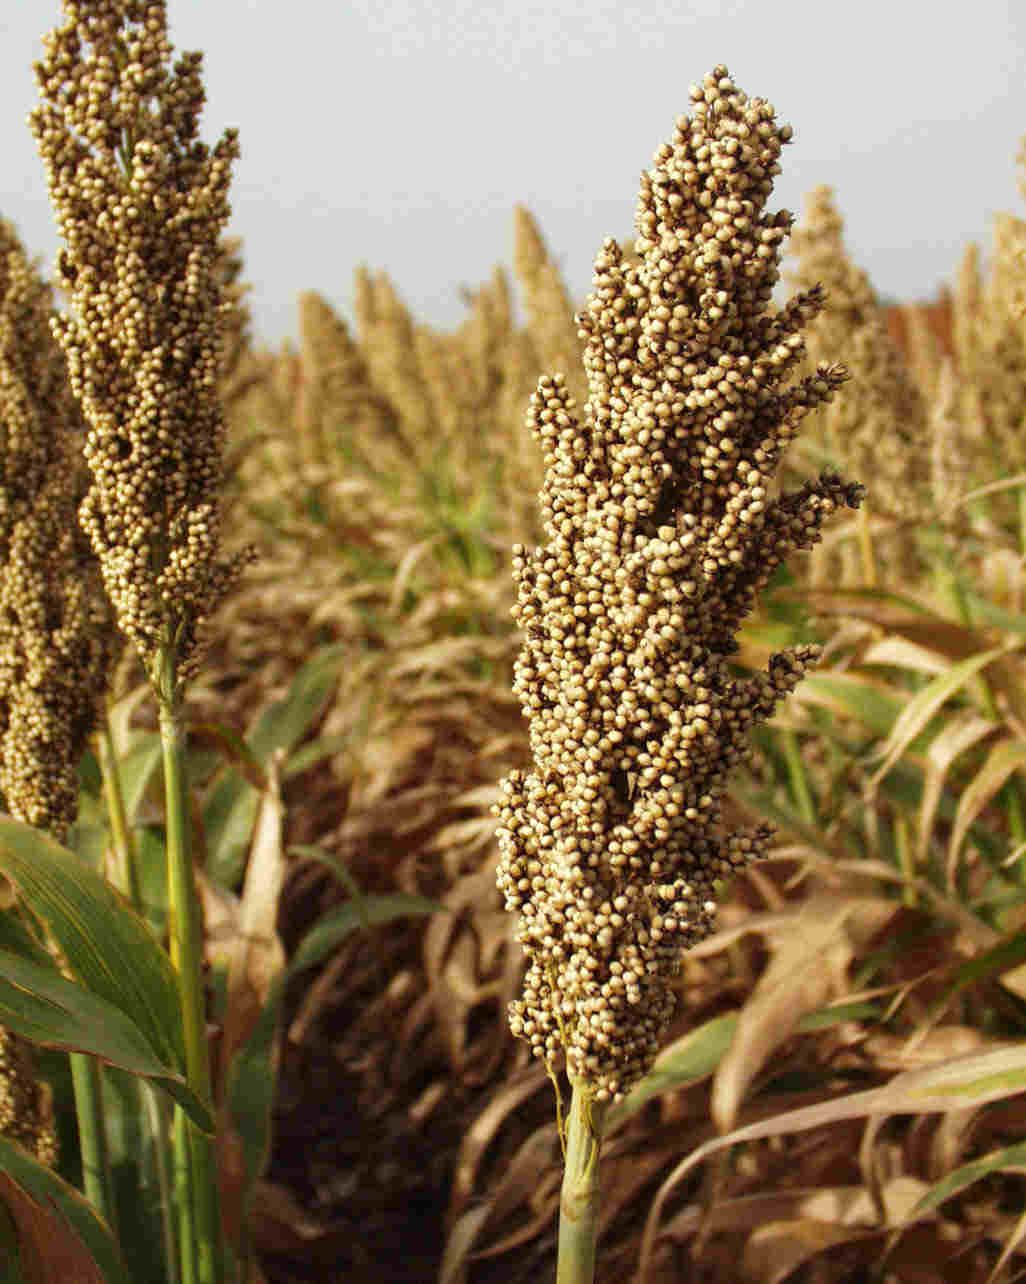 Sorghum Rice An Interesting Starting Point For Possible